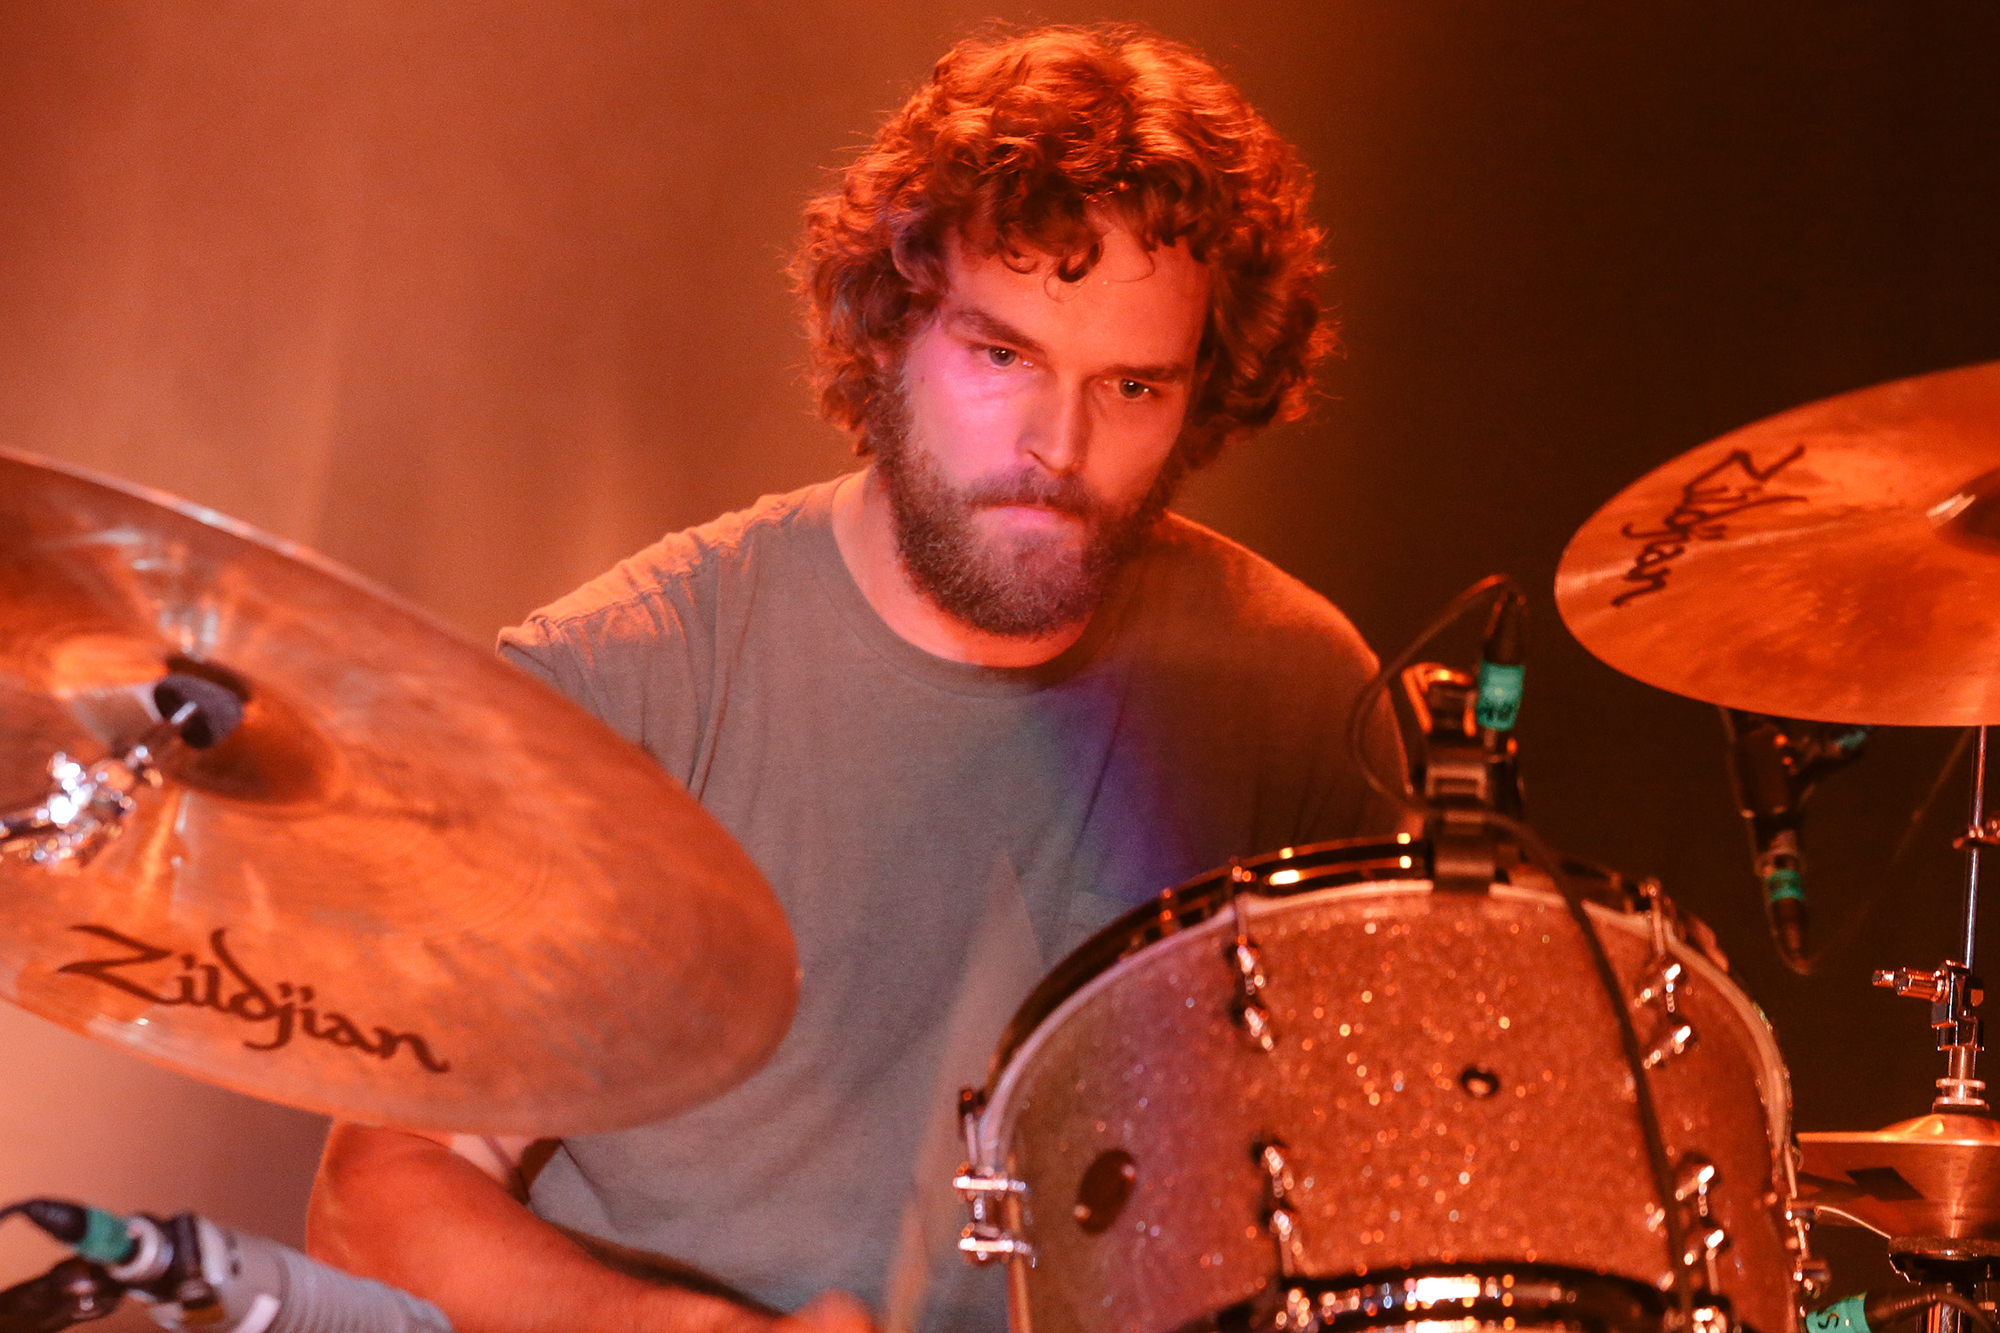 Alabama Shakes Drummer Steve Johnson 'Maintains His Innocence' on Child Abuse Allegations: Lawyer